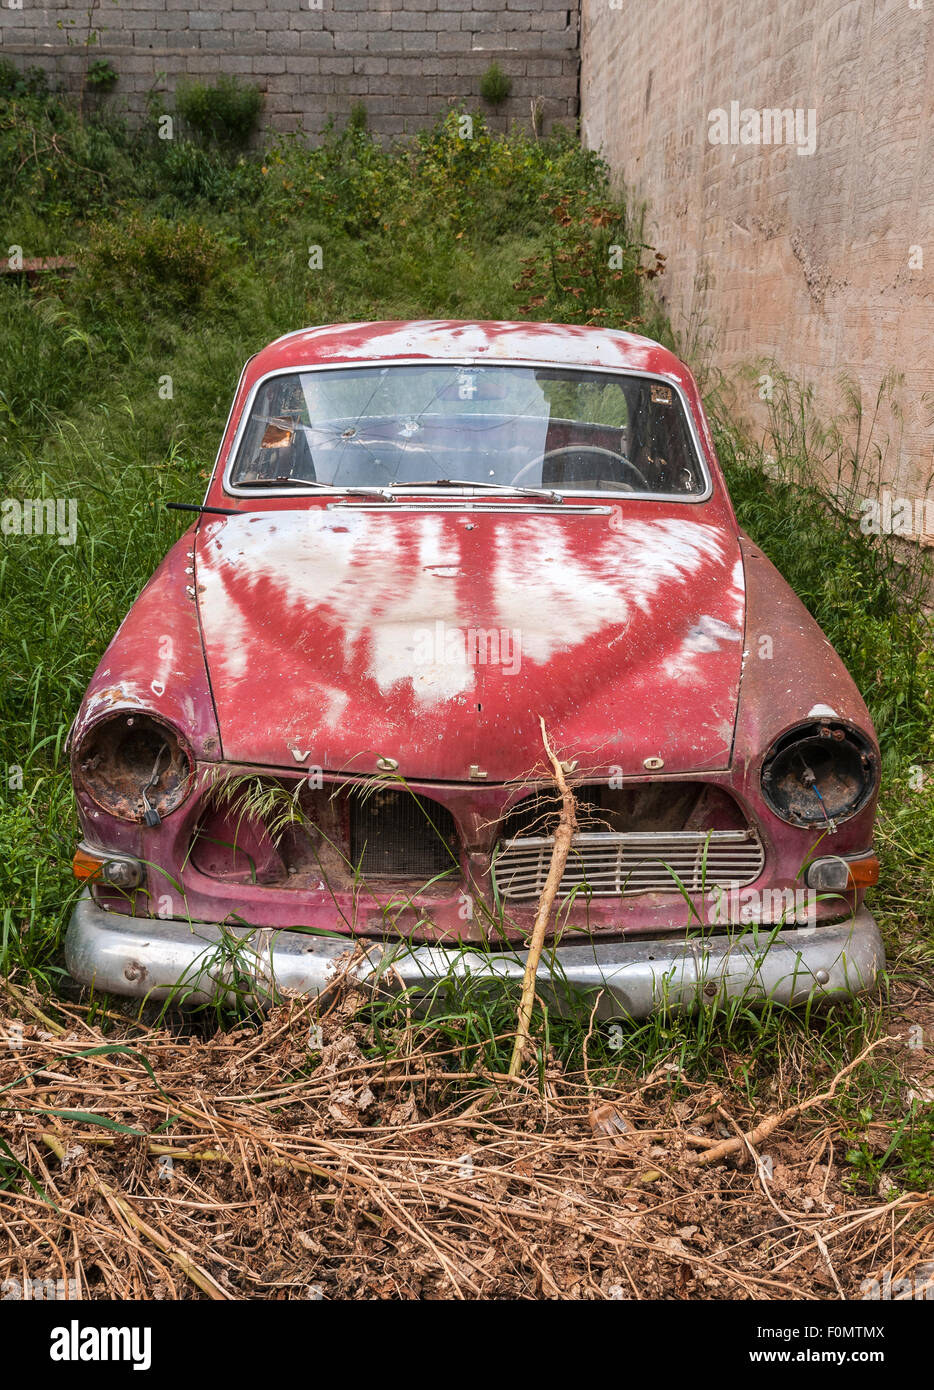 Abandoned car, old Volvo, on vacant plot.  Crete, Greece - Stock Image